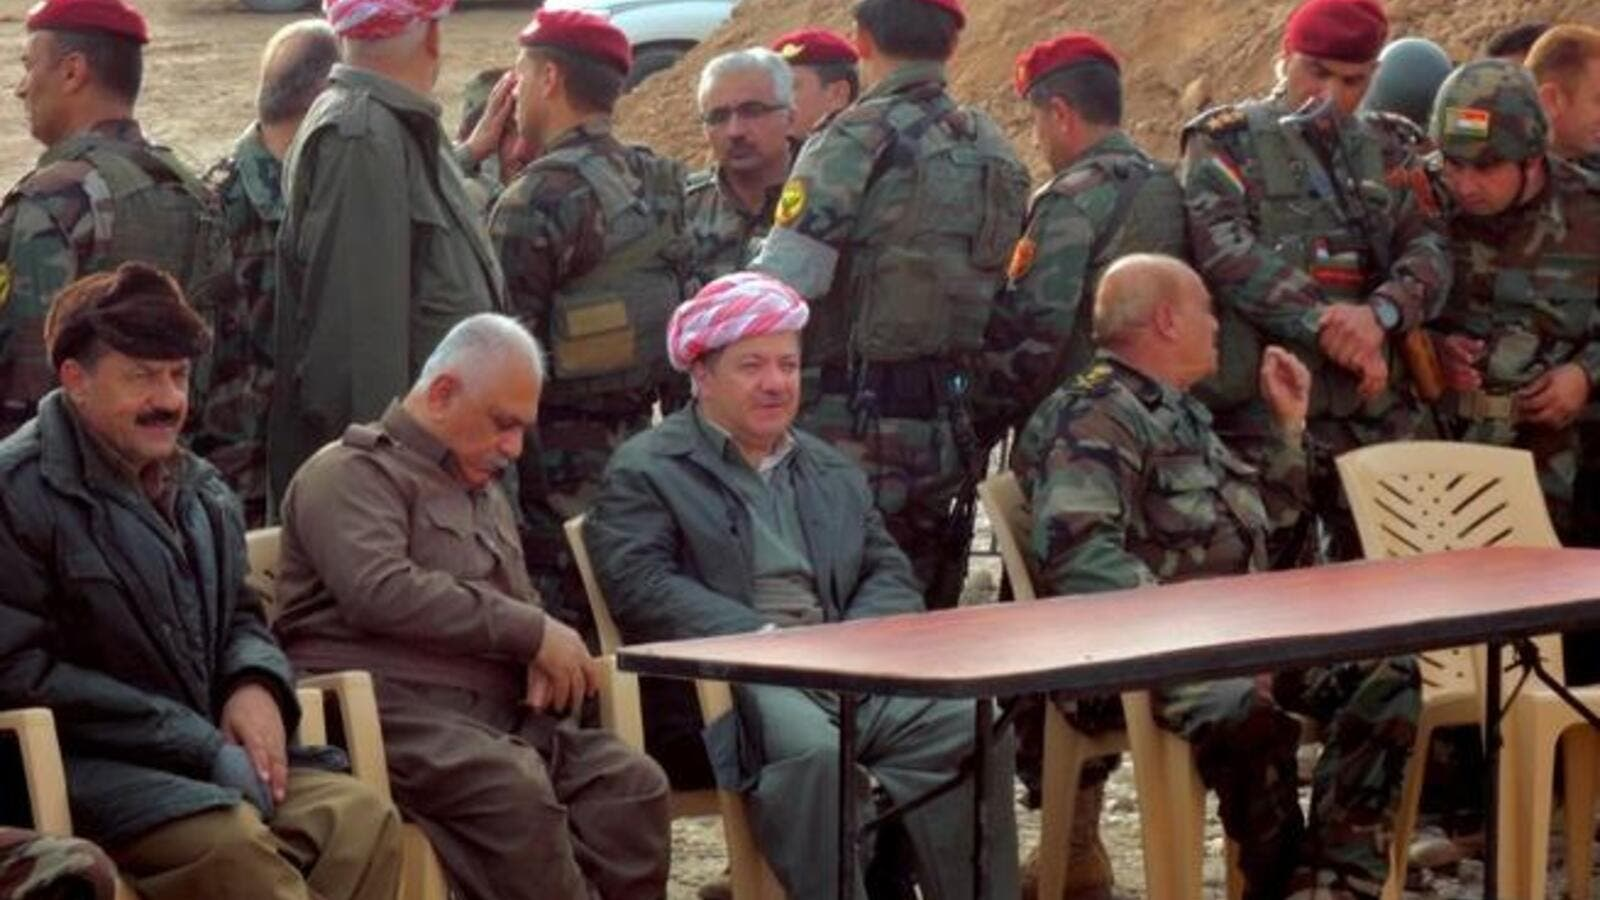 Massud Barzani, the president of Iraq's autonomous Kurdistan region (C-bottom) sits amidst Kurdish peshmerga security forces during a visit to the disputed north Iraq province of Kirkuk. (AFP PHOTO/MARWAN IBRAHIM)